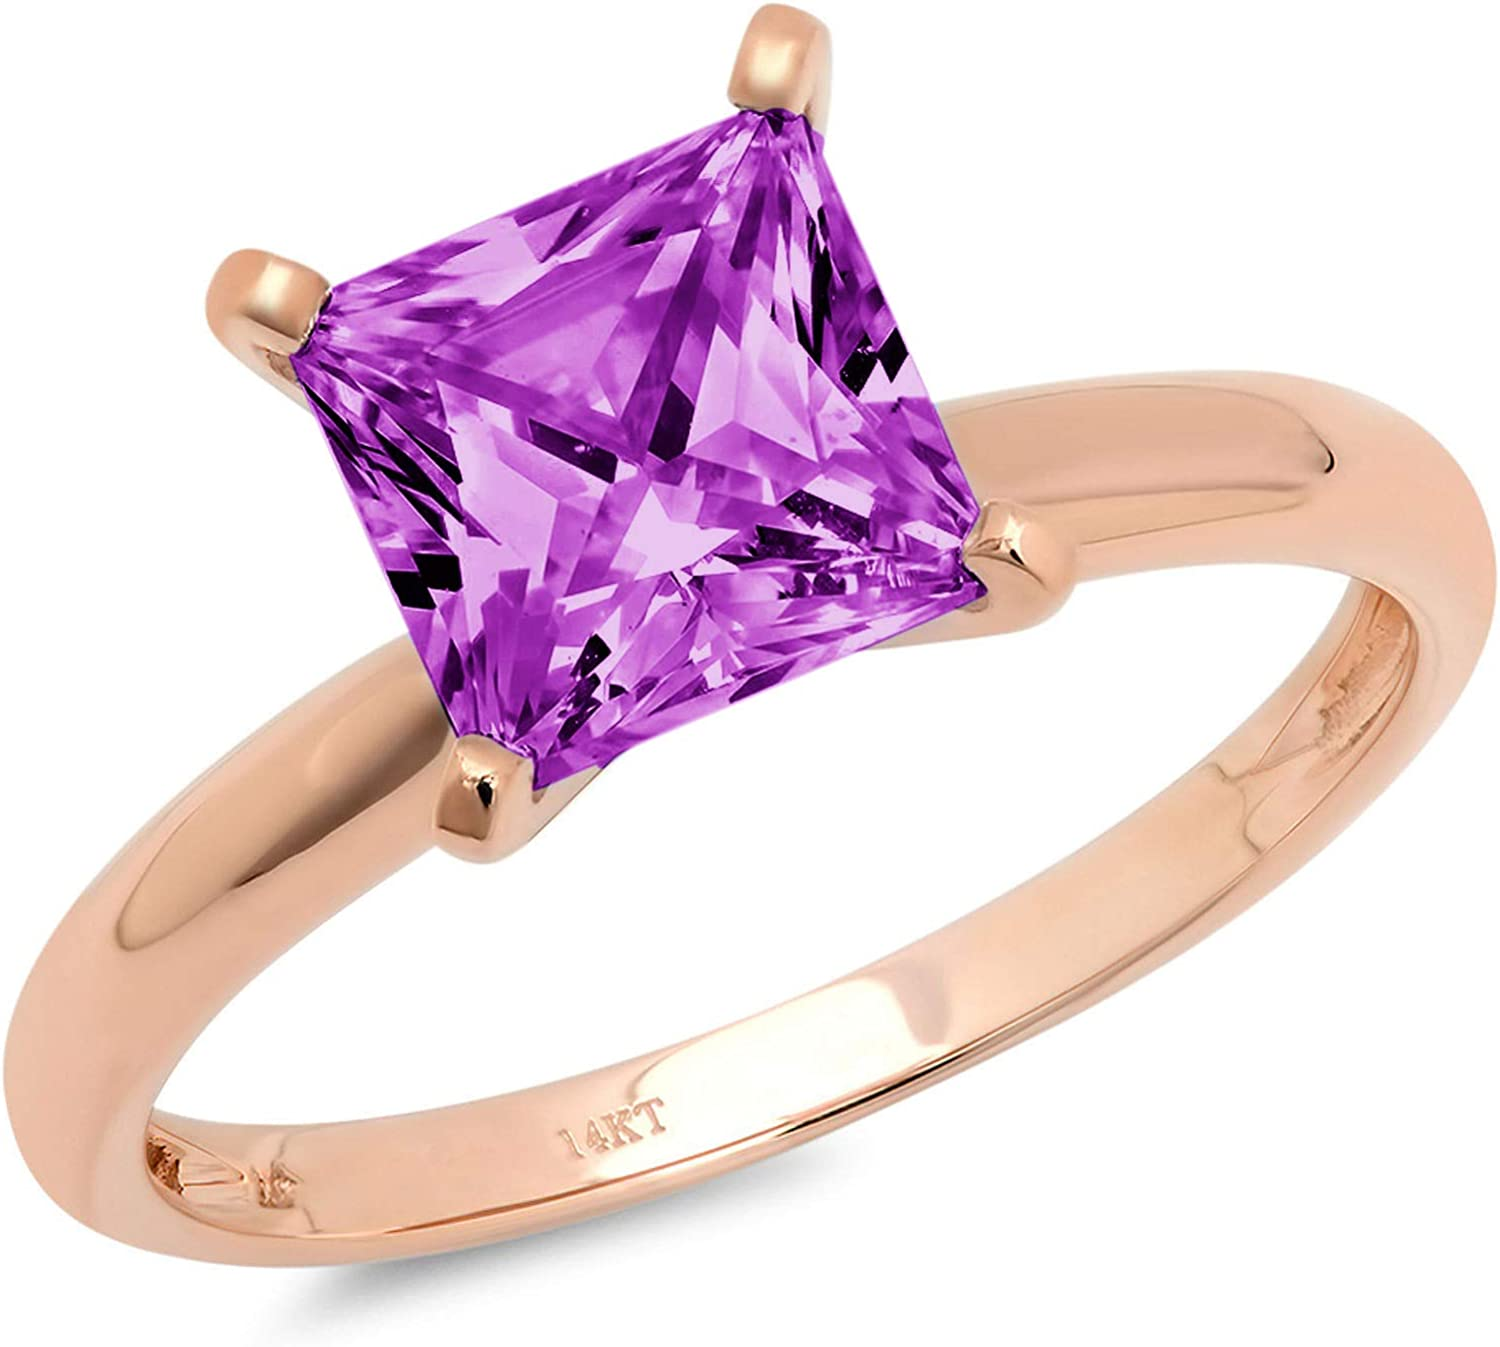 0.95 ct Brilliant Princess Cut Solitaire Flawless Simulated CZ Purple Alexandrite Ideal VVS1 4-Prong Engagement Wedding Bridal Promise Anniversary Designer Ring Solid 14k Rose Gold for Women